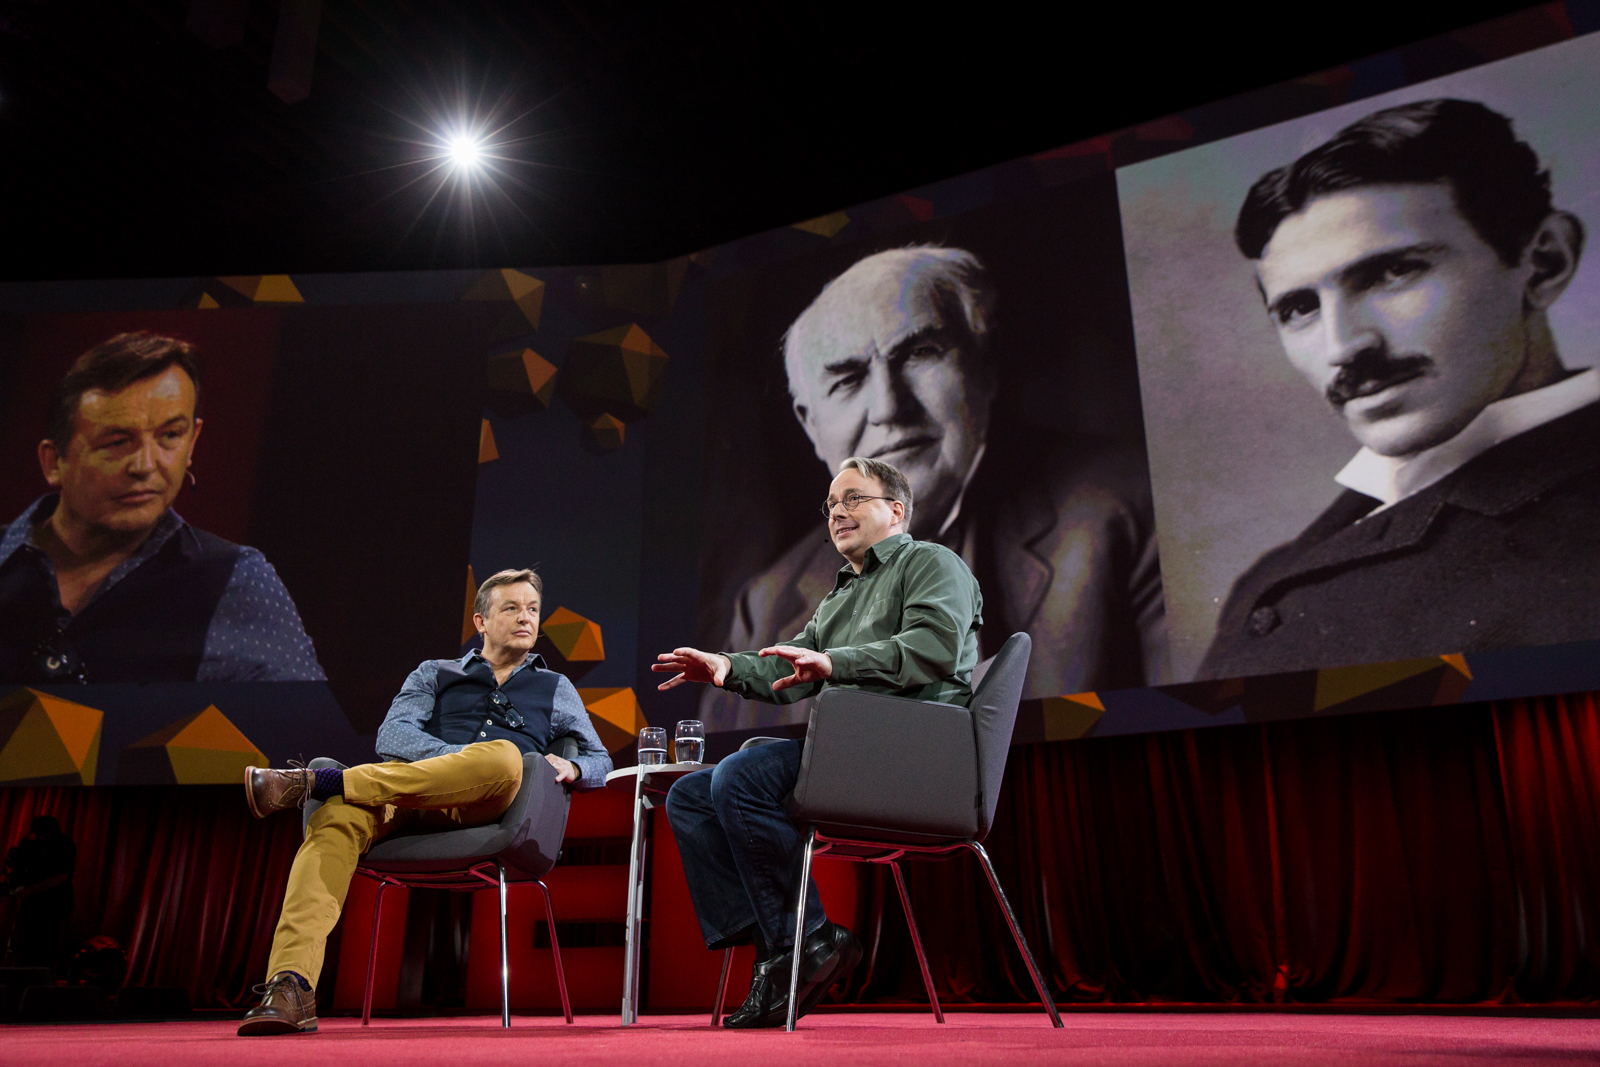 Host Chris Anderson interviews Linus Torvalds at TED2016 - Dream, February 15-19, 2016, Vancouver Convention Center, Vancouver, Canada. Photo: Bret Hartman / TED